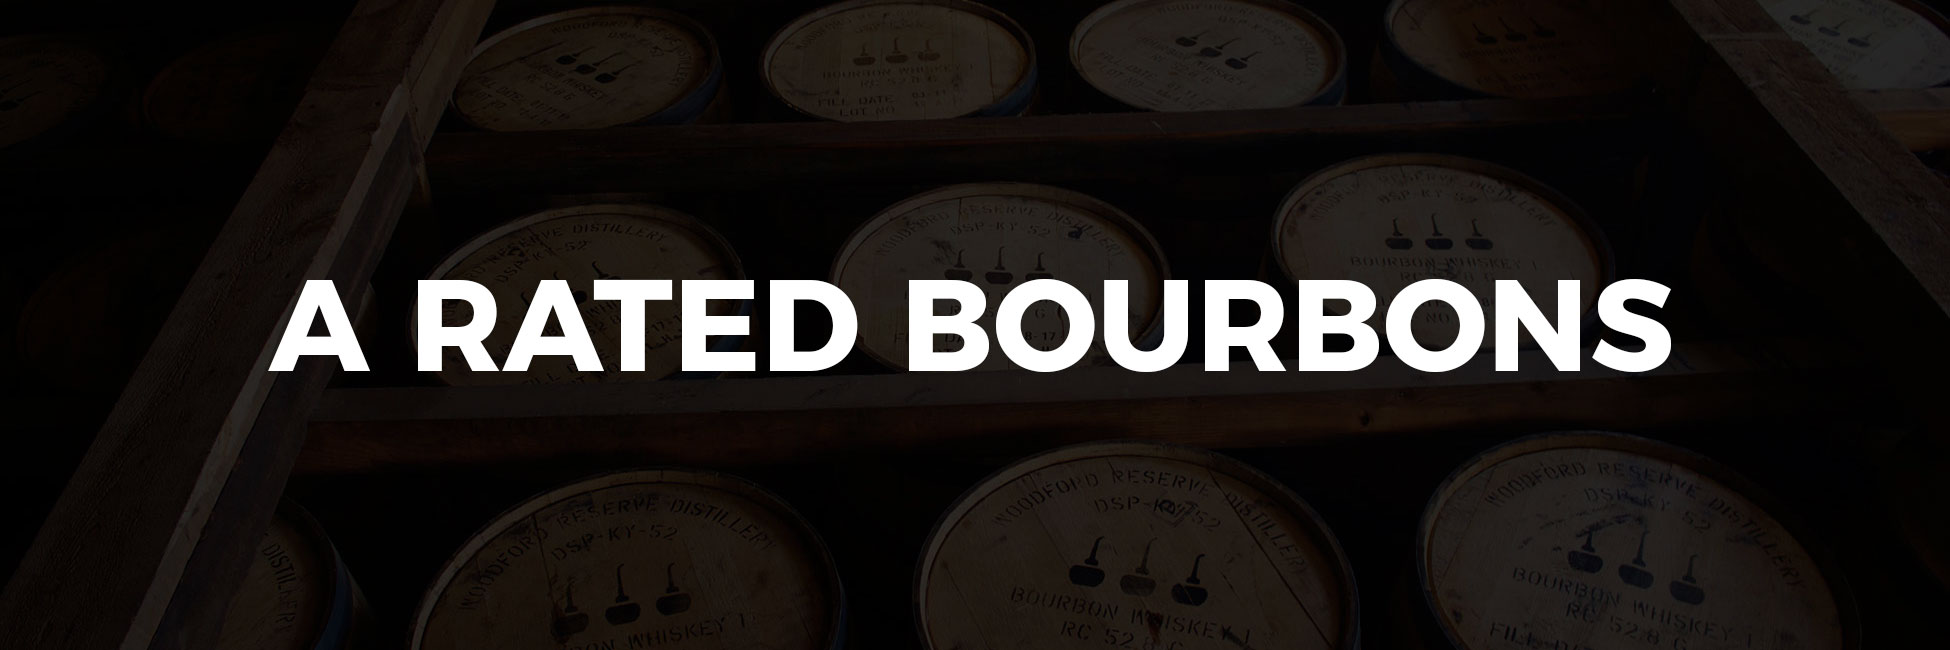 A Rated Bourbon